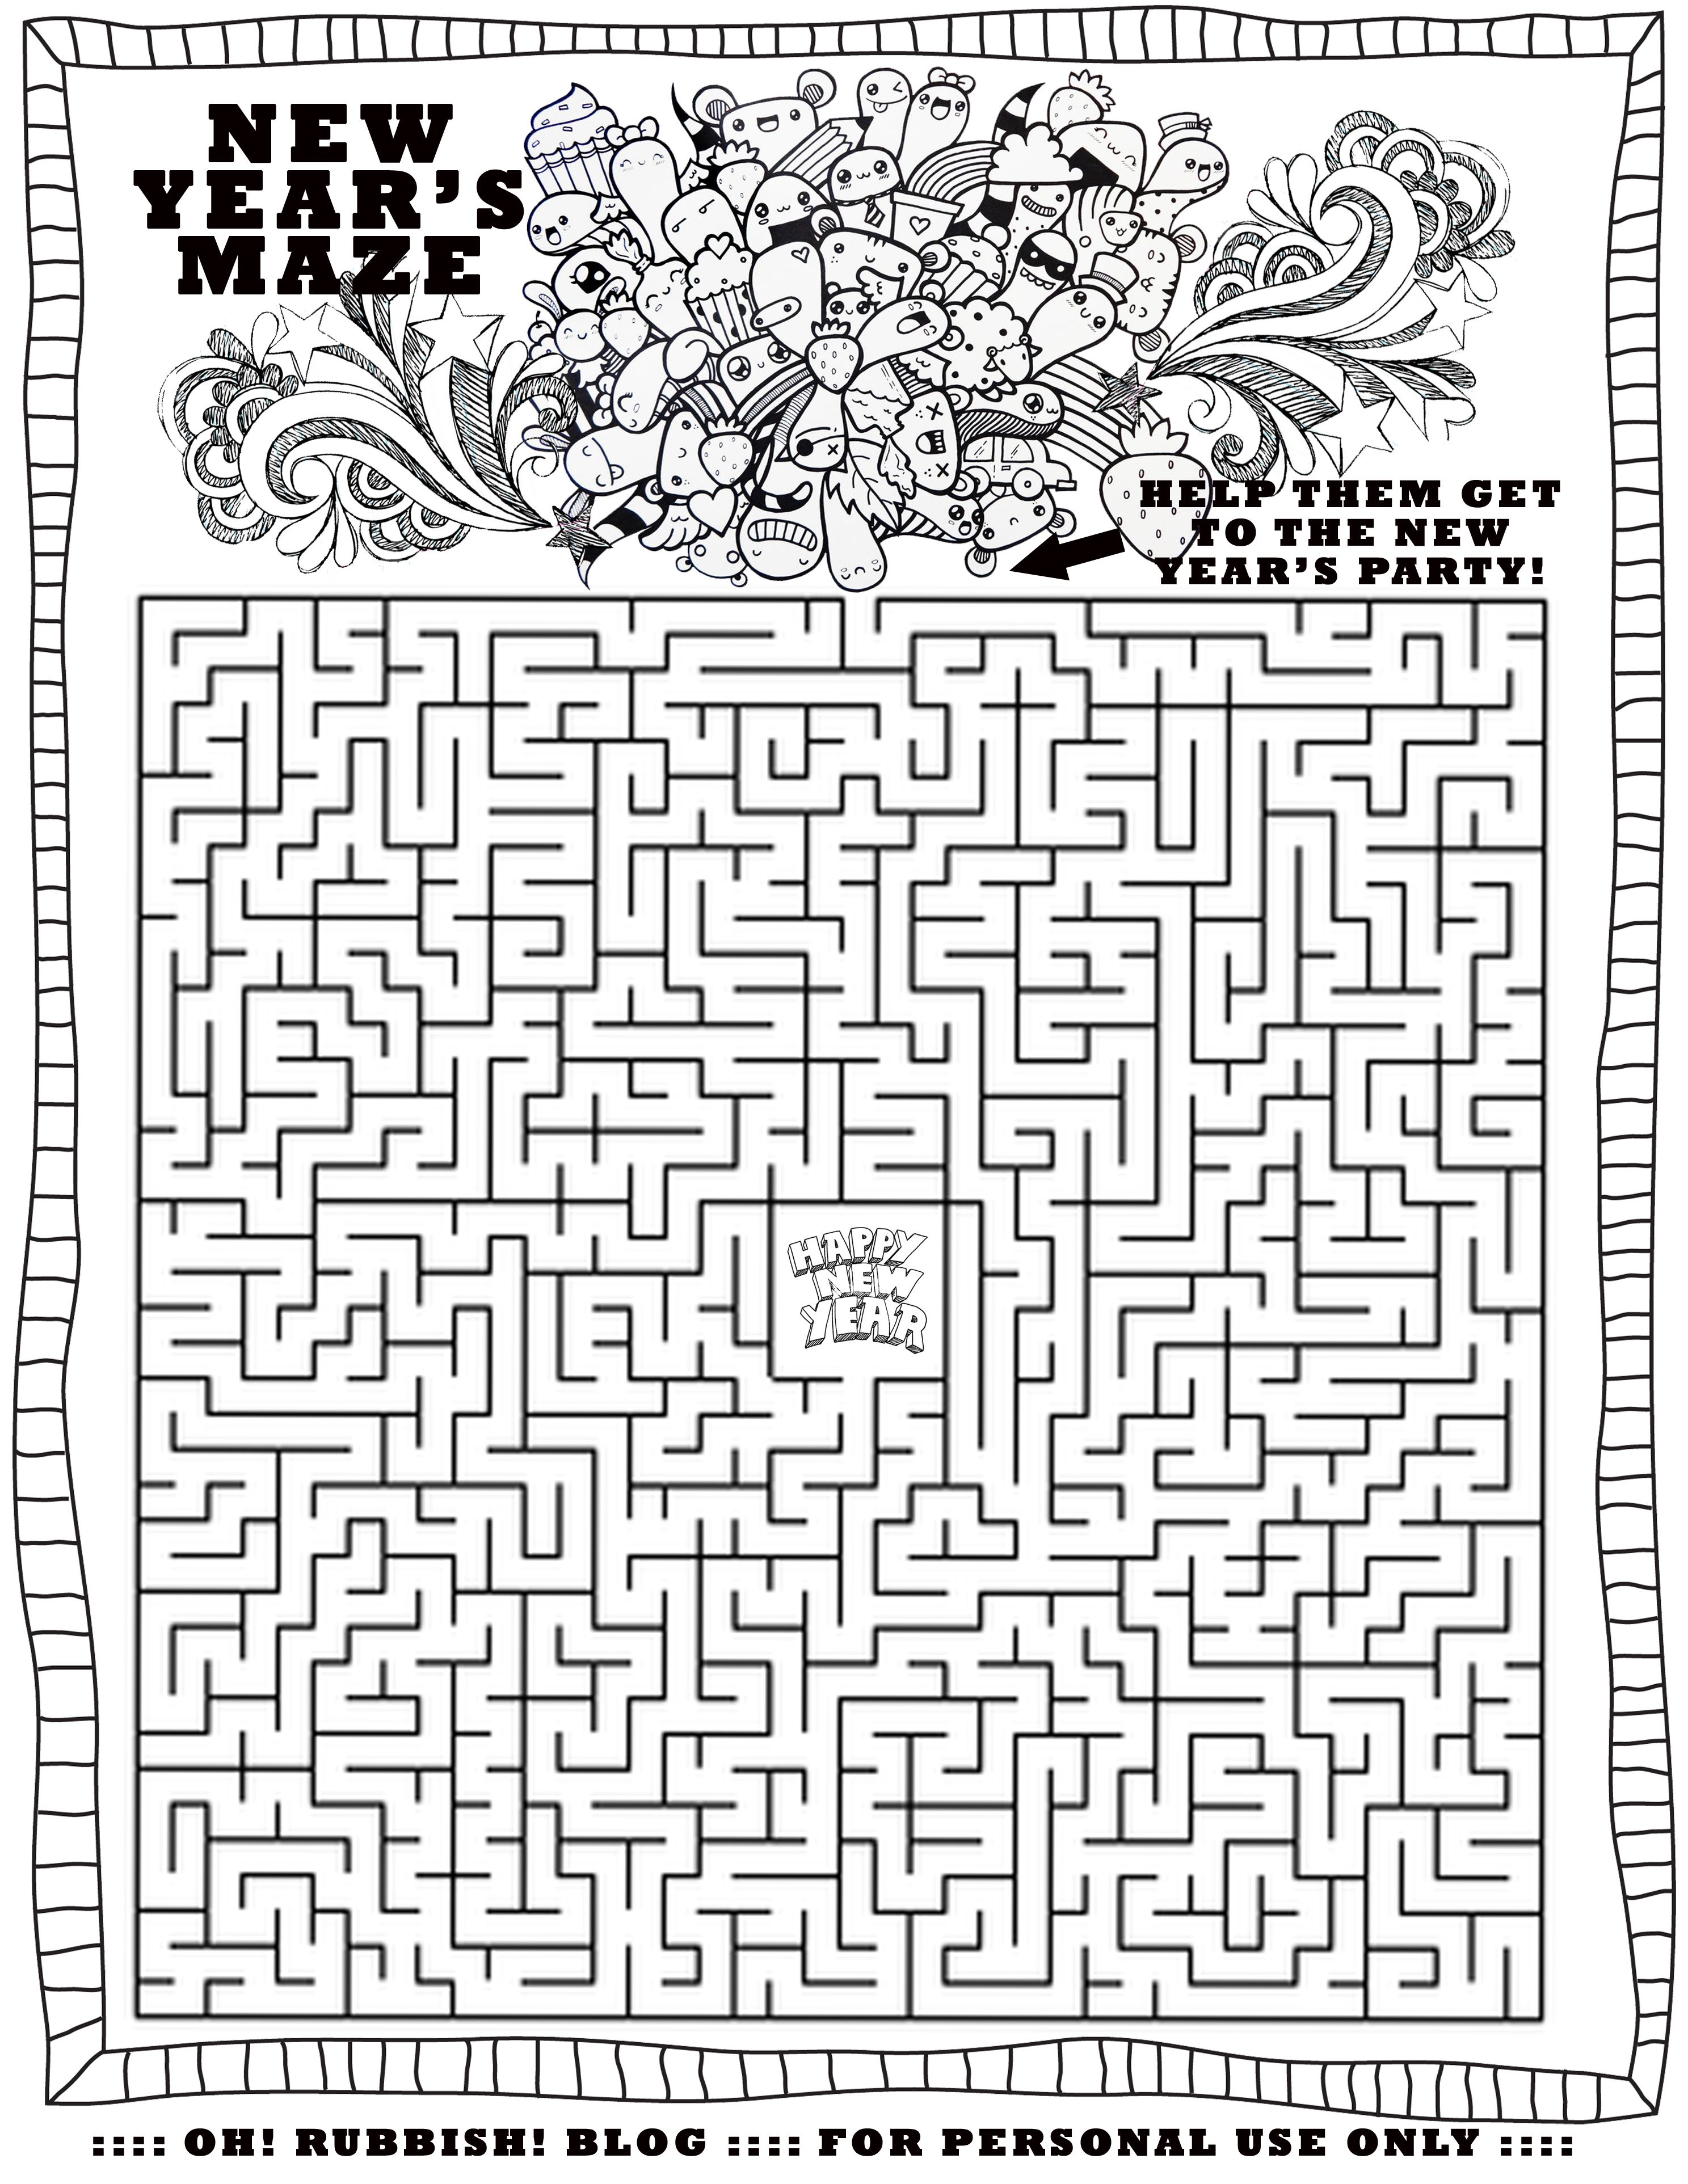 Happy New Year Maze by oh rubbish blog Misc Pinterest